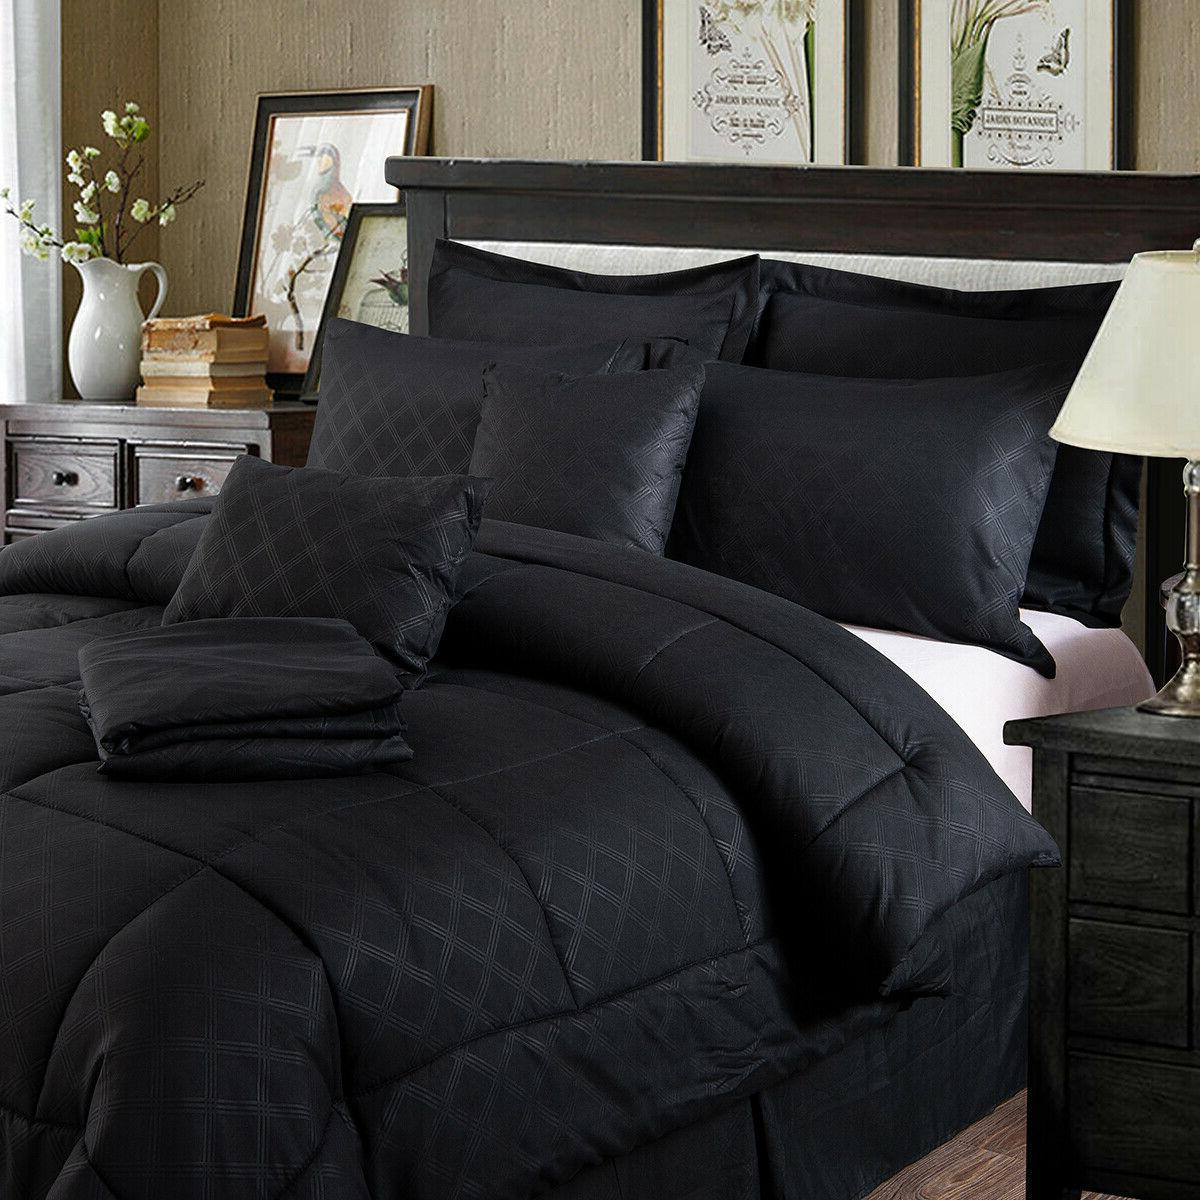 10-Piece Comforter Bedding Bed Sheets King/Cal SALE!!